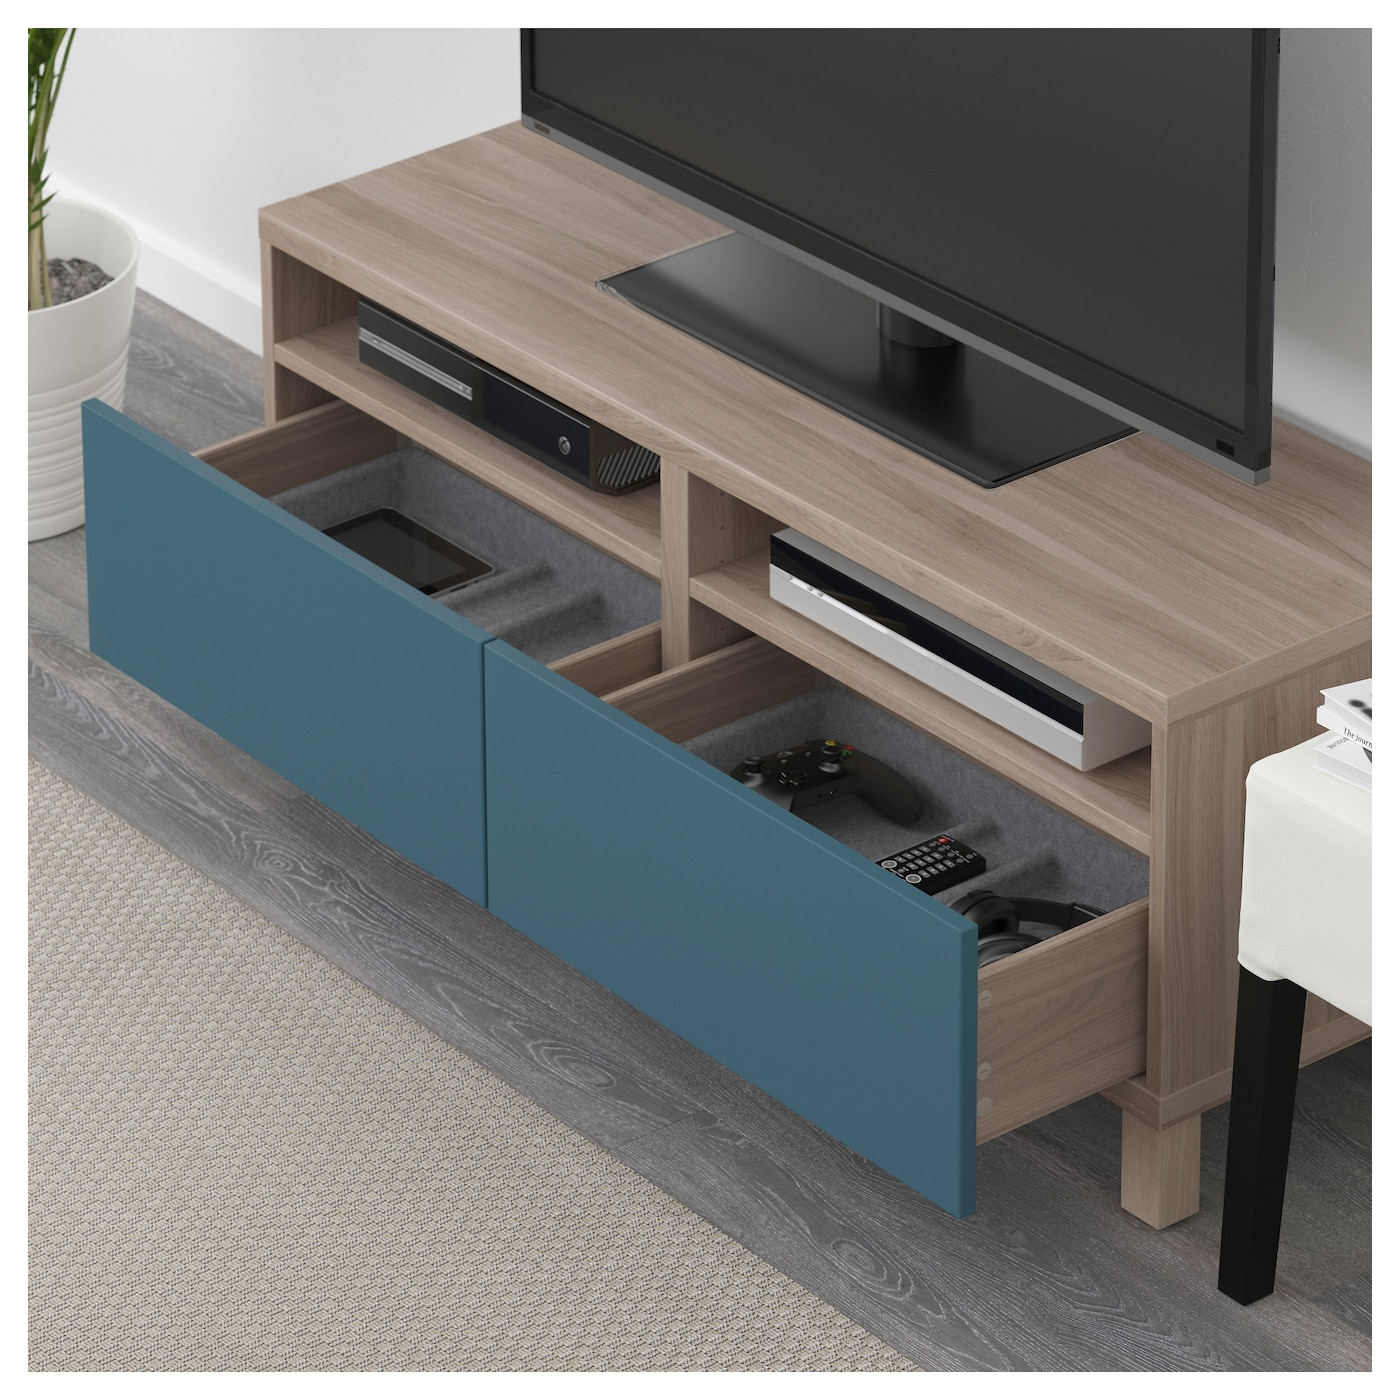 best banc tv avec tiroirs motif noyer teint gris valviken bleu fonc 120x40x48 cm ikea. Black Bedroom Furniture Sets. Home Design Ideas